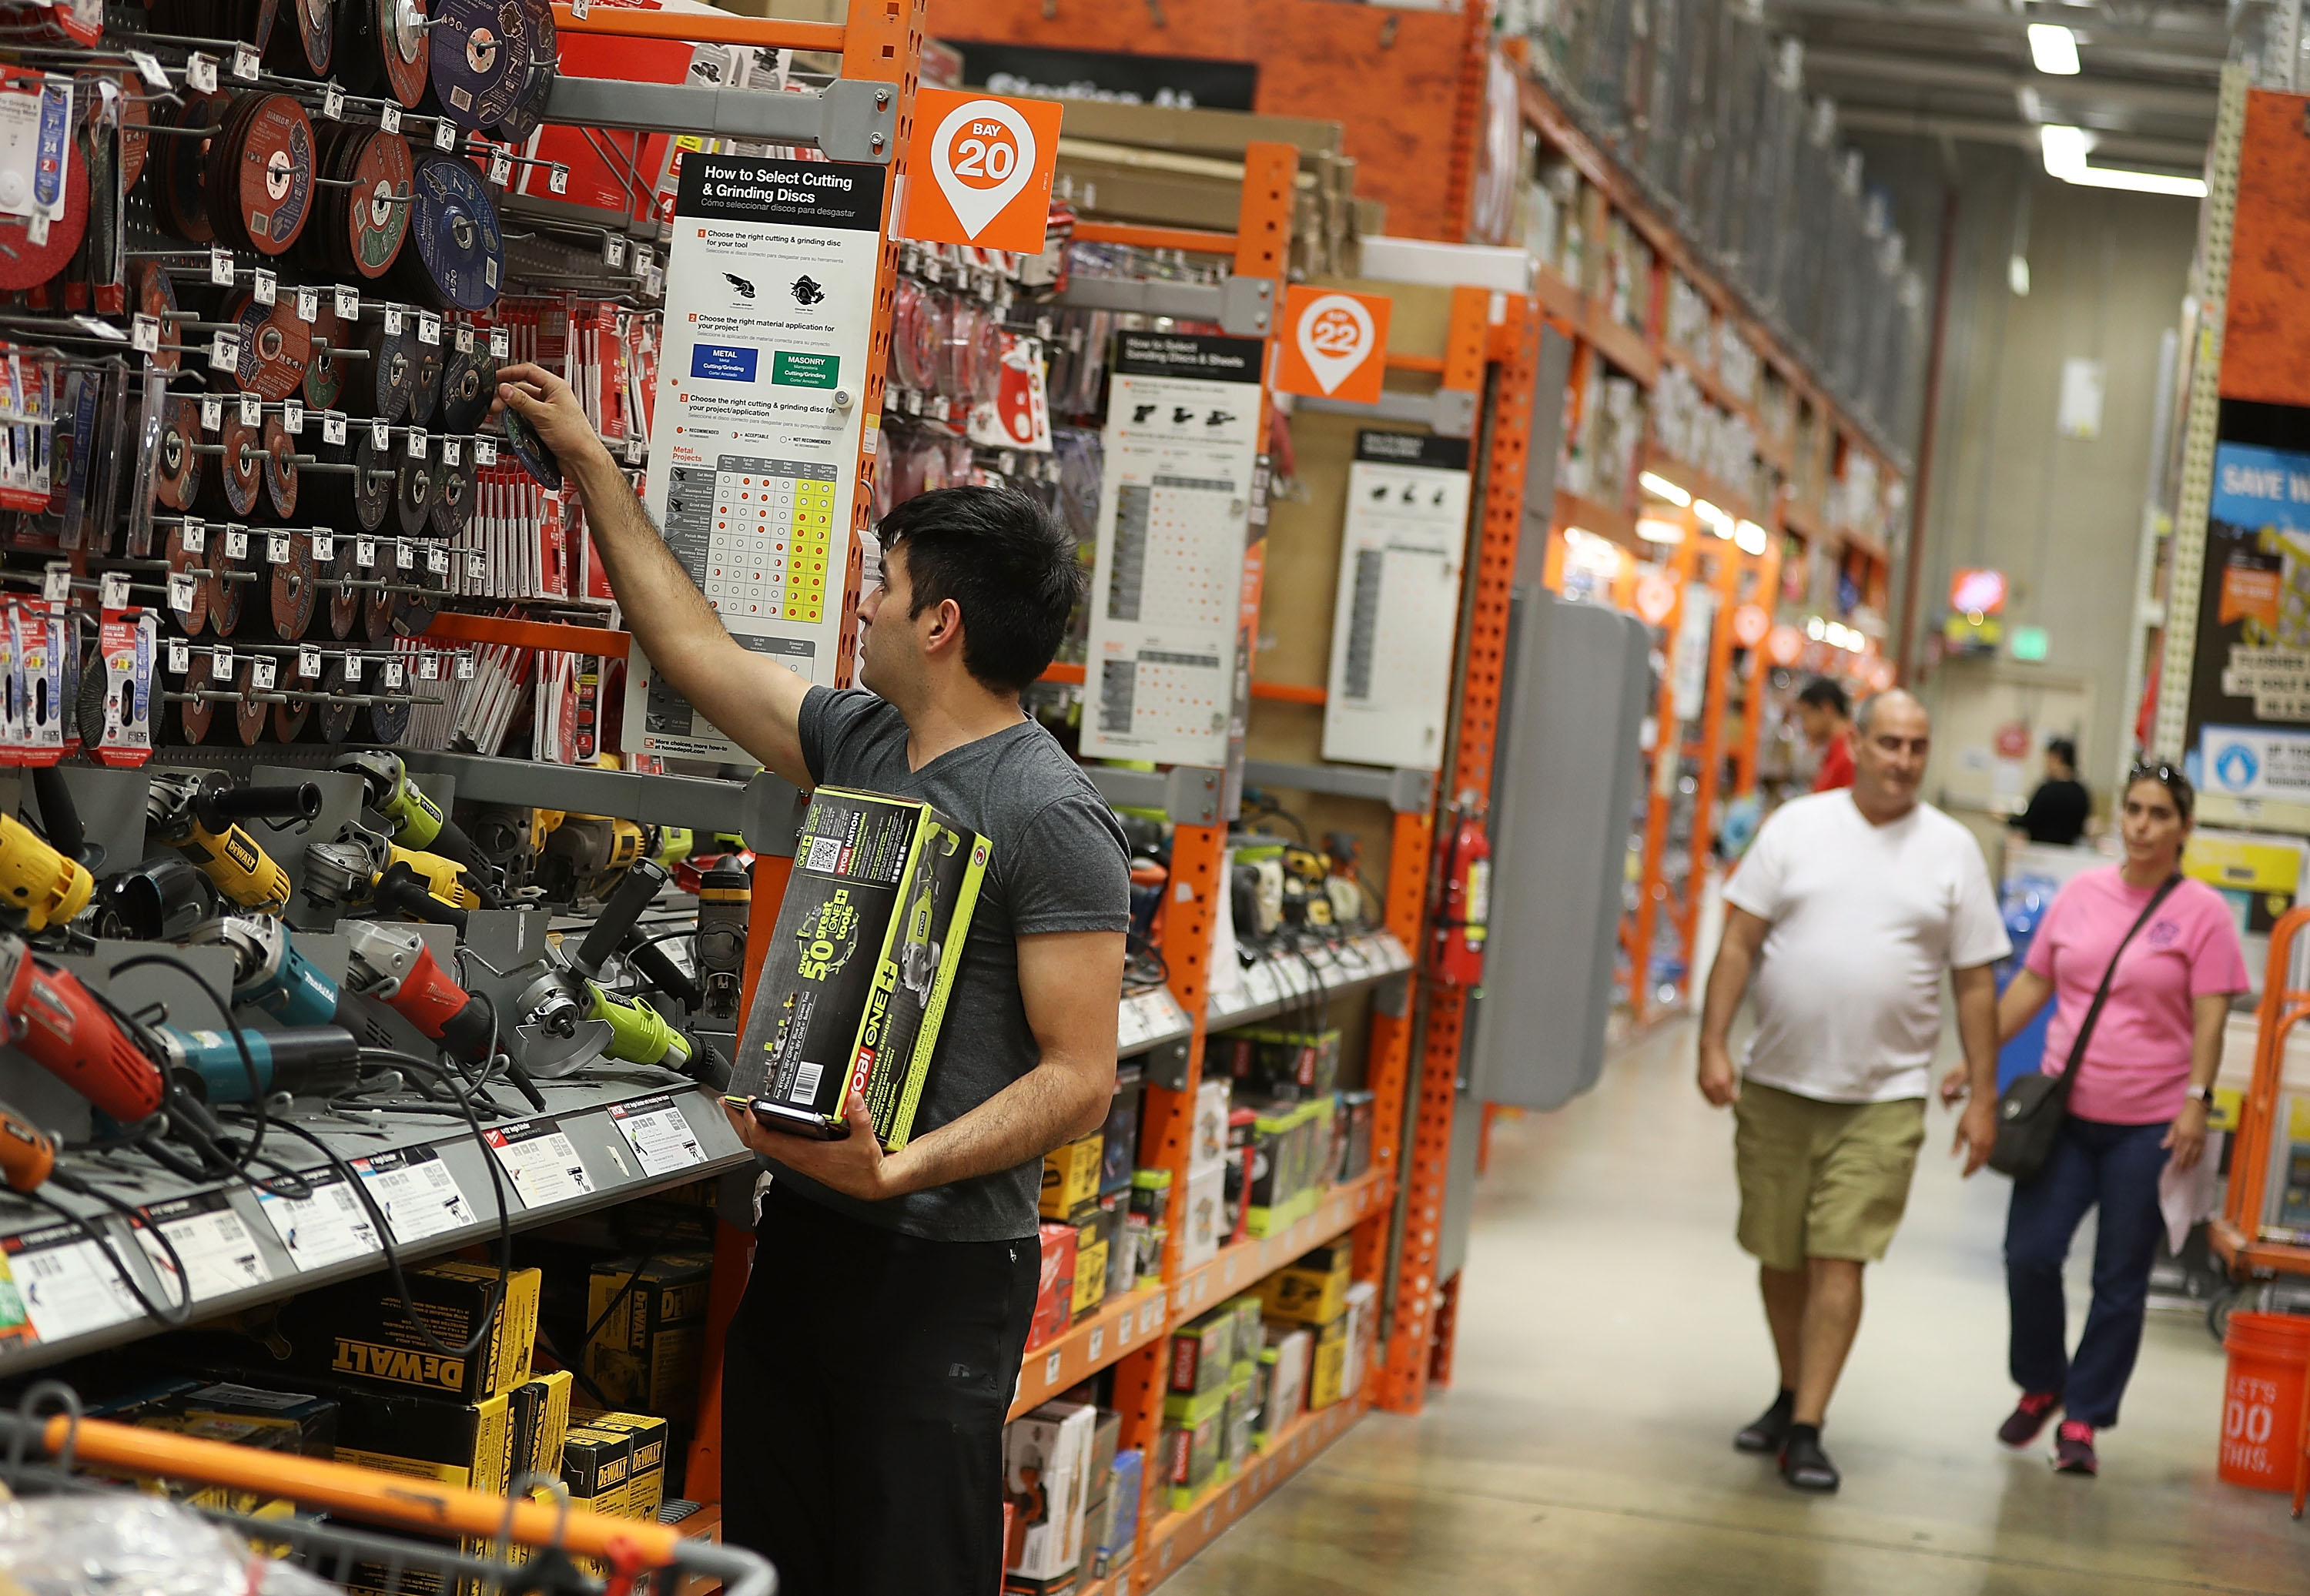 Man shops in a Home Depot store in Miami, Florida.